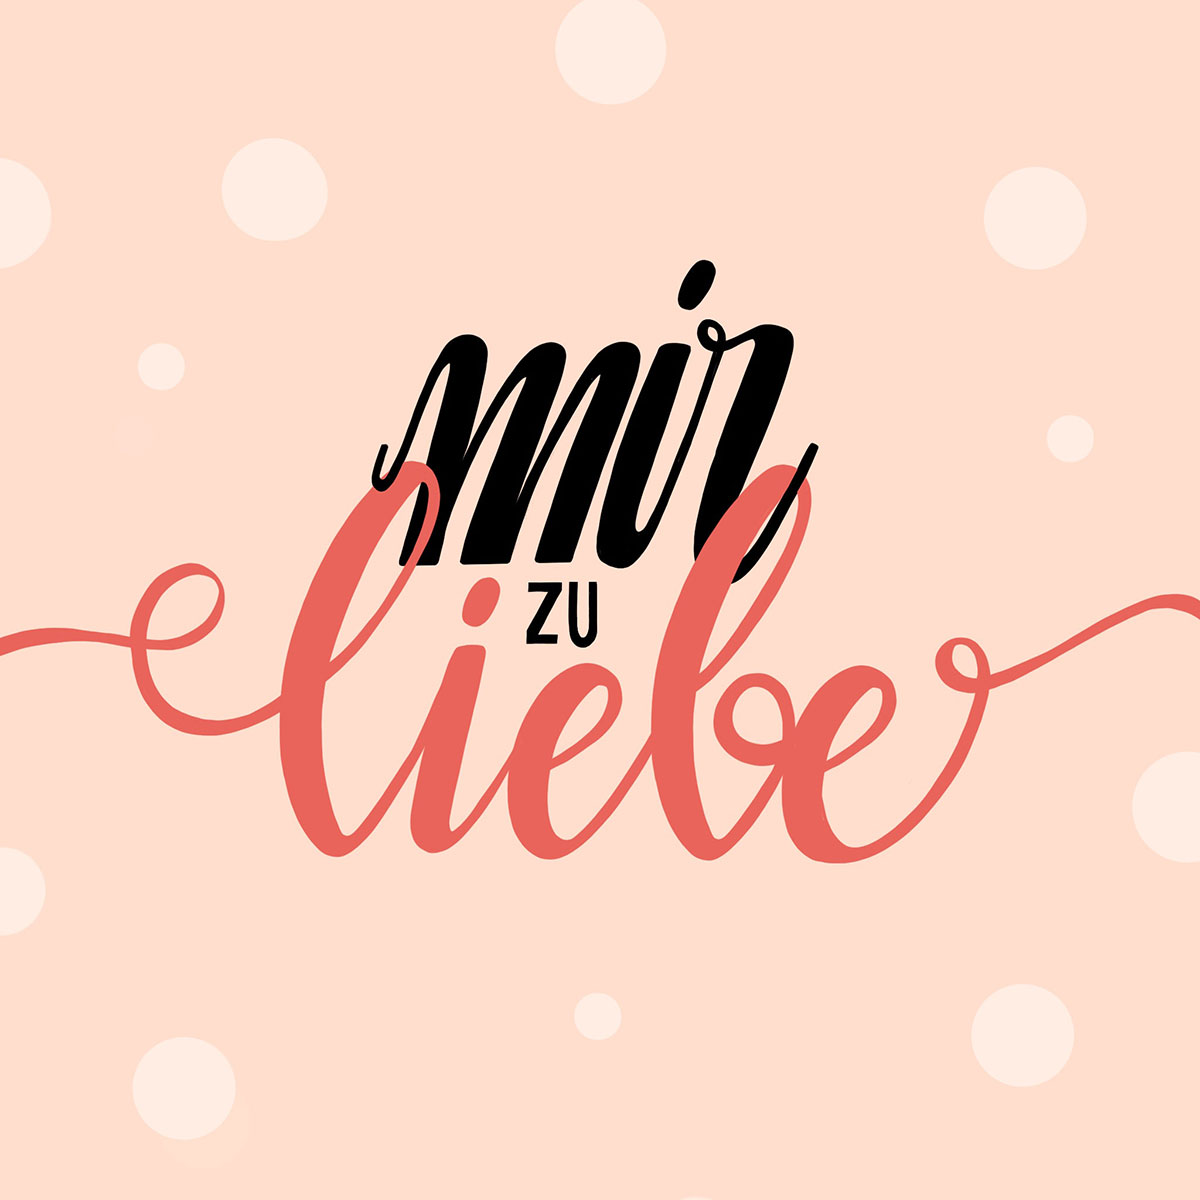 Lettering - mirzuliebe